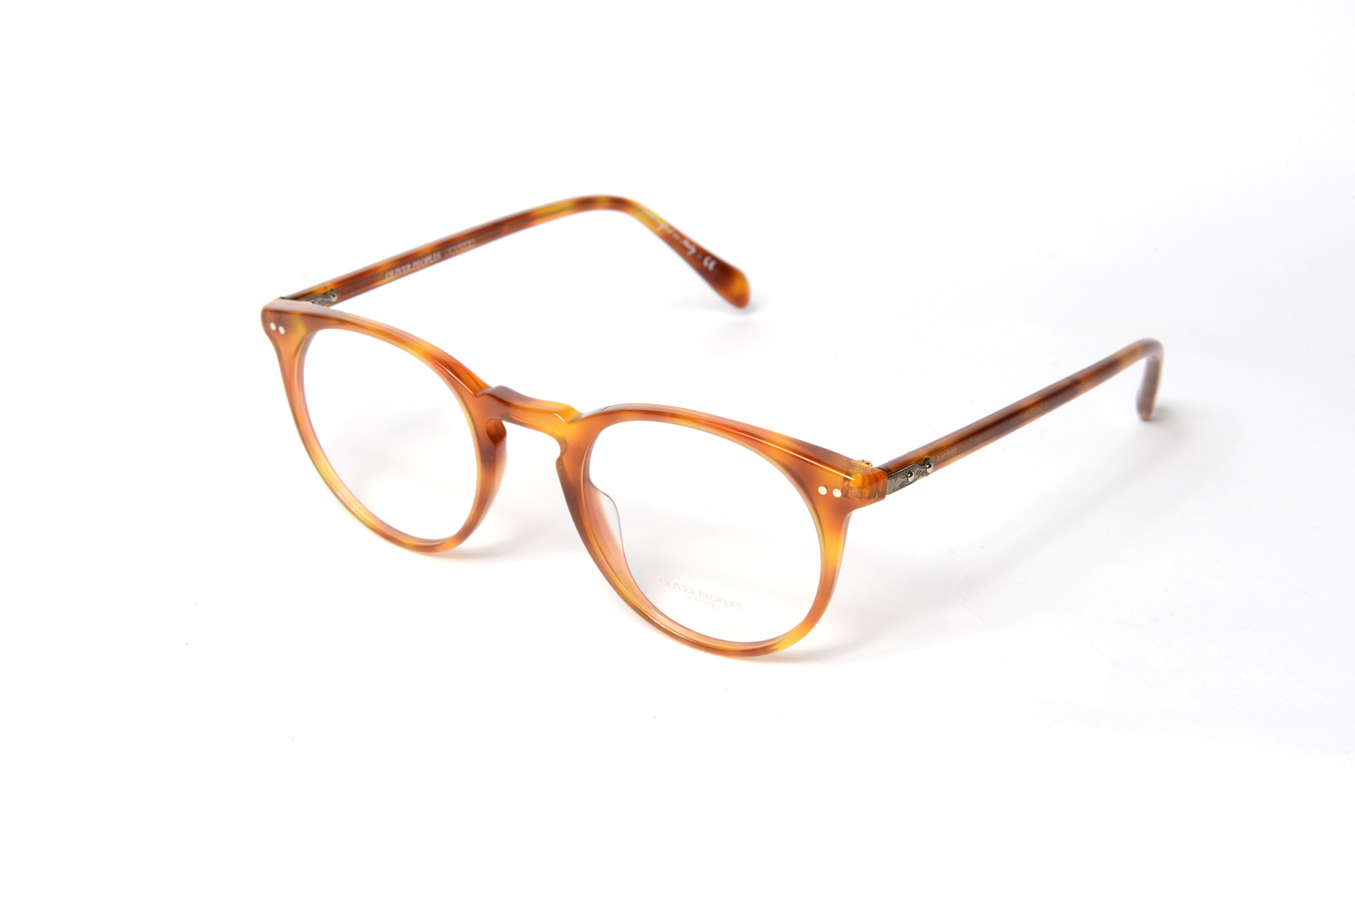 81deed804188d Oliver Peoples Sir o malley - Piccadilly Opticians -